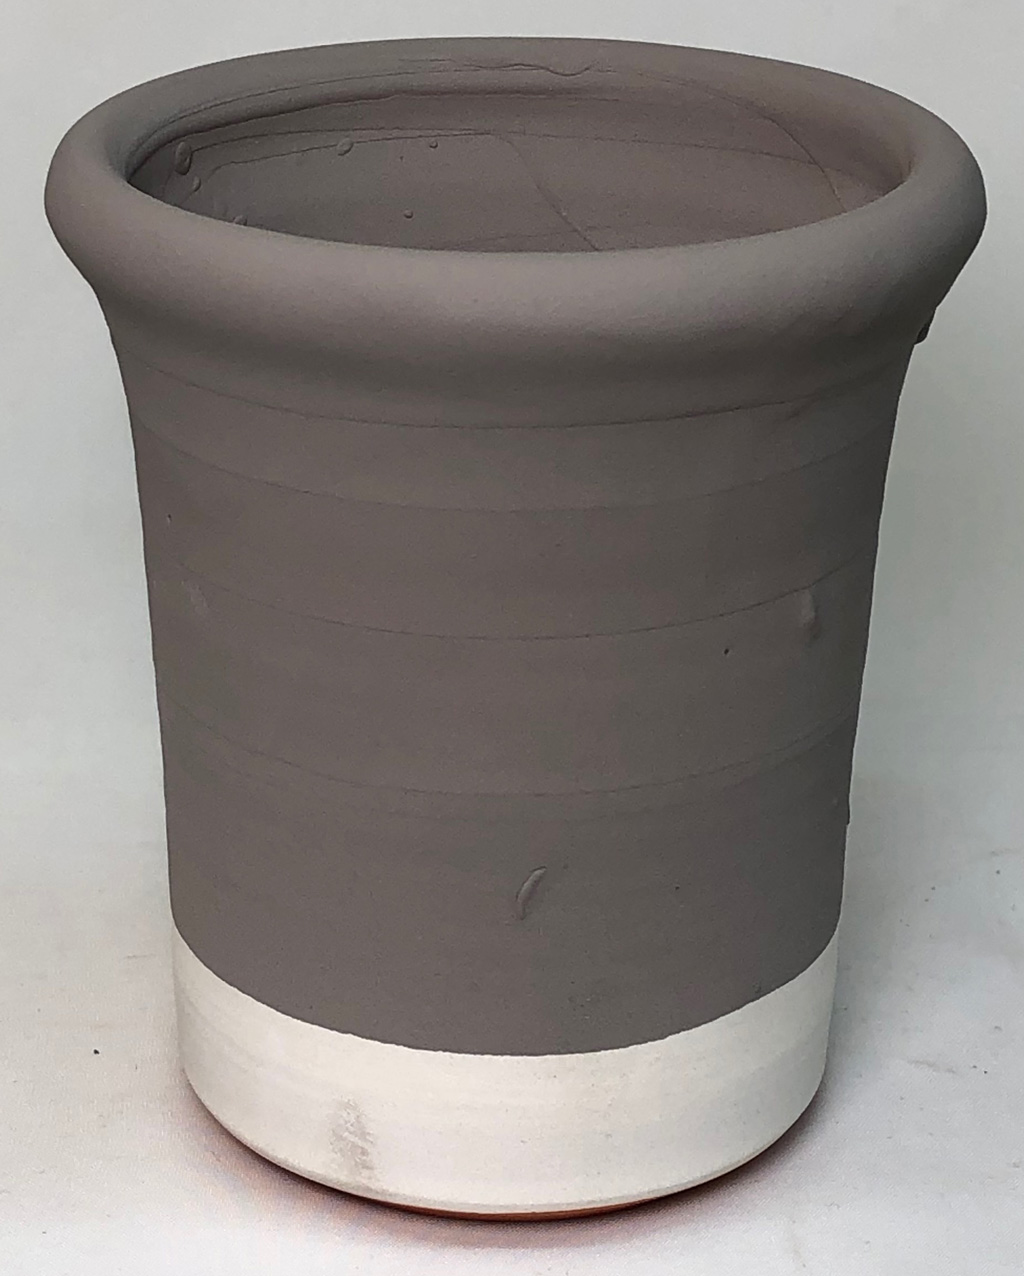 A small cup with multiple layers of glaze applied, and no cracks